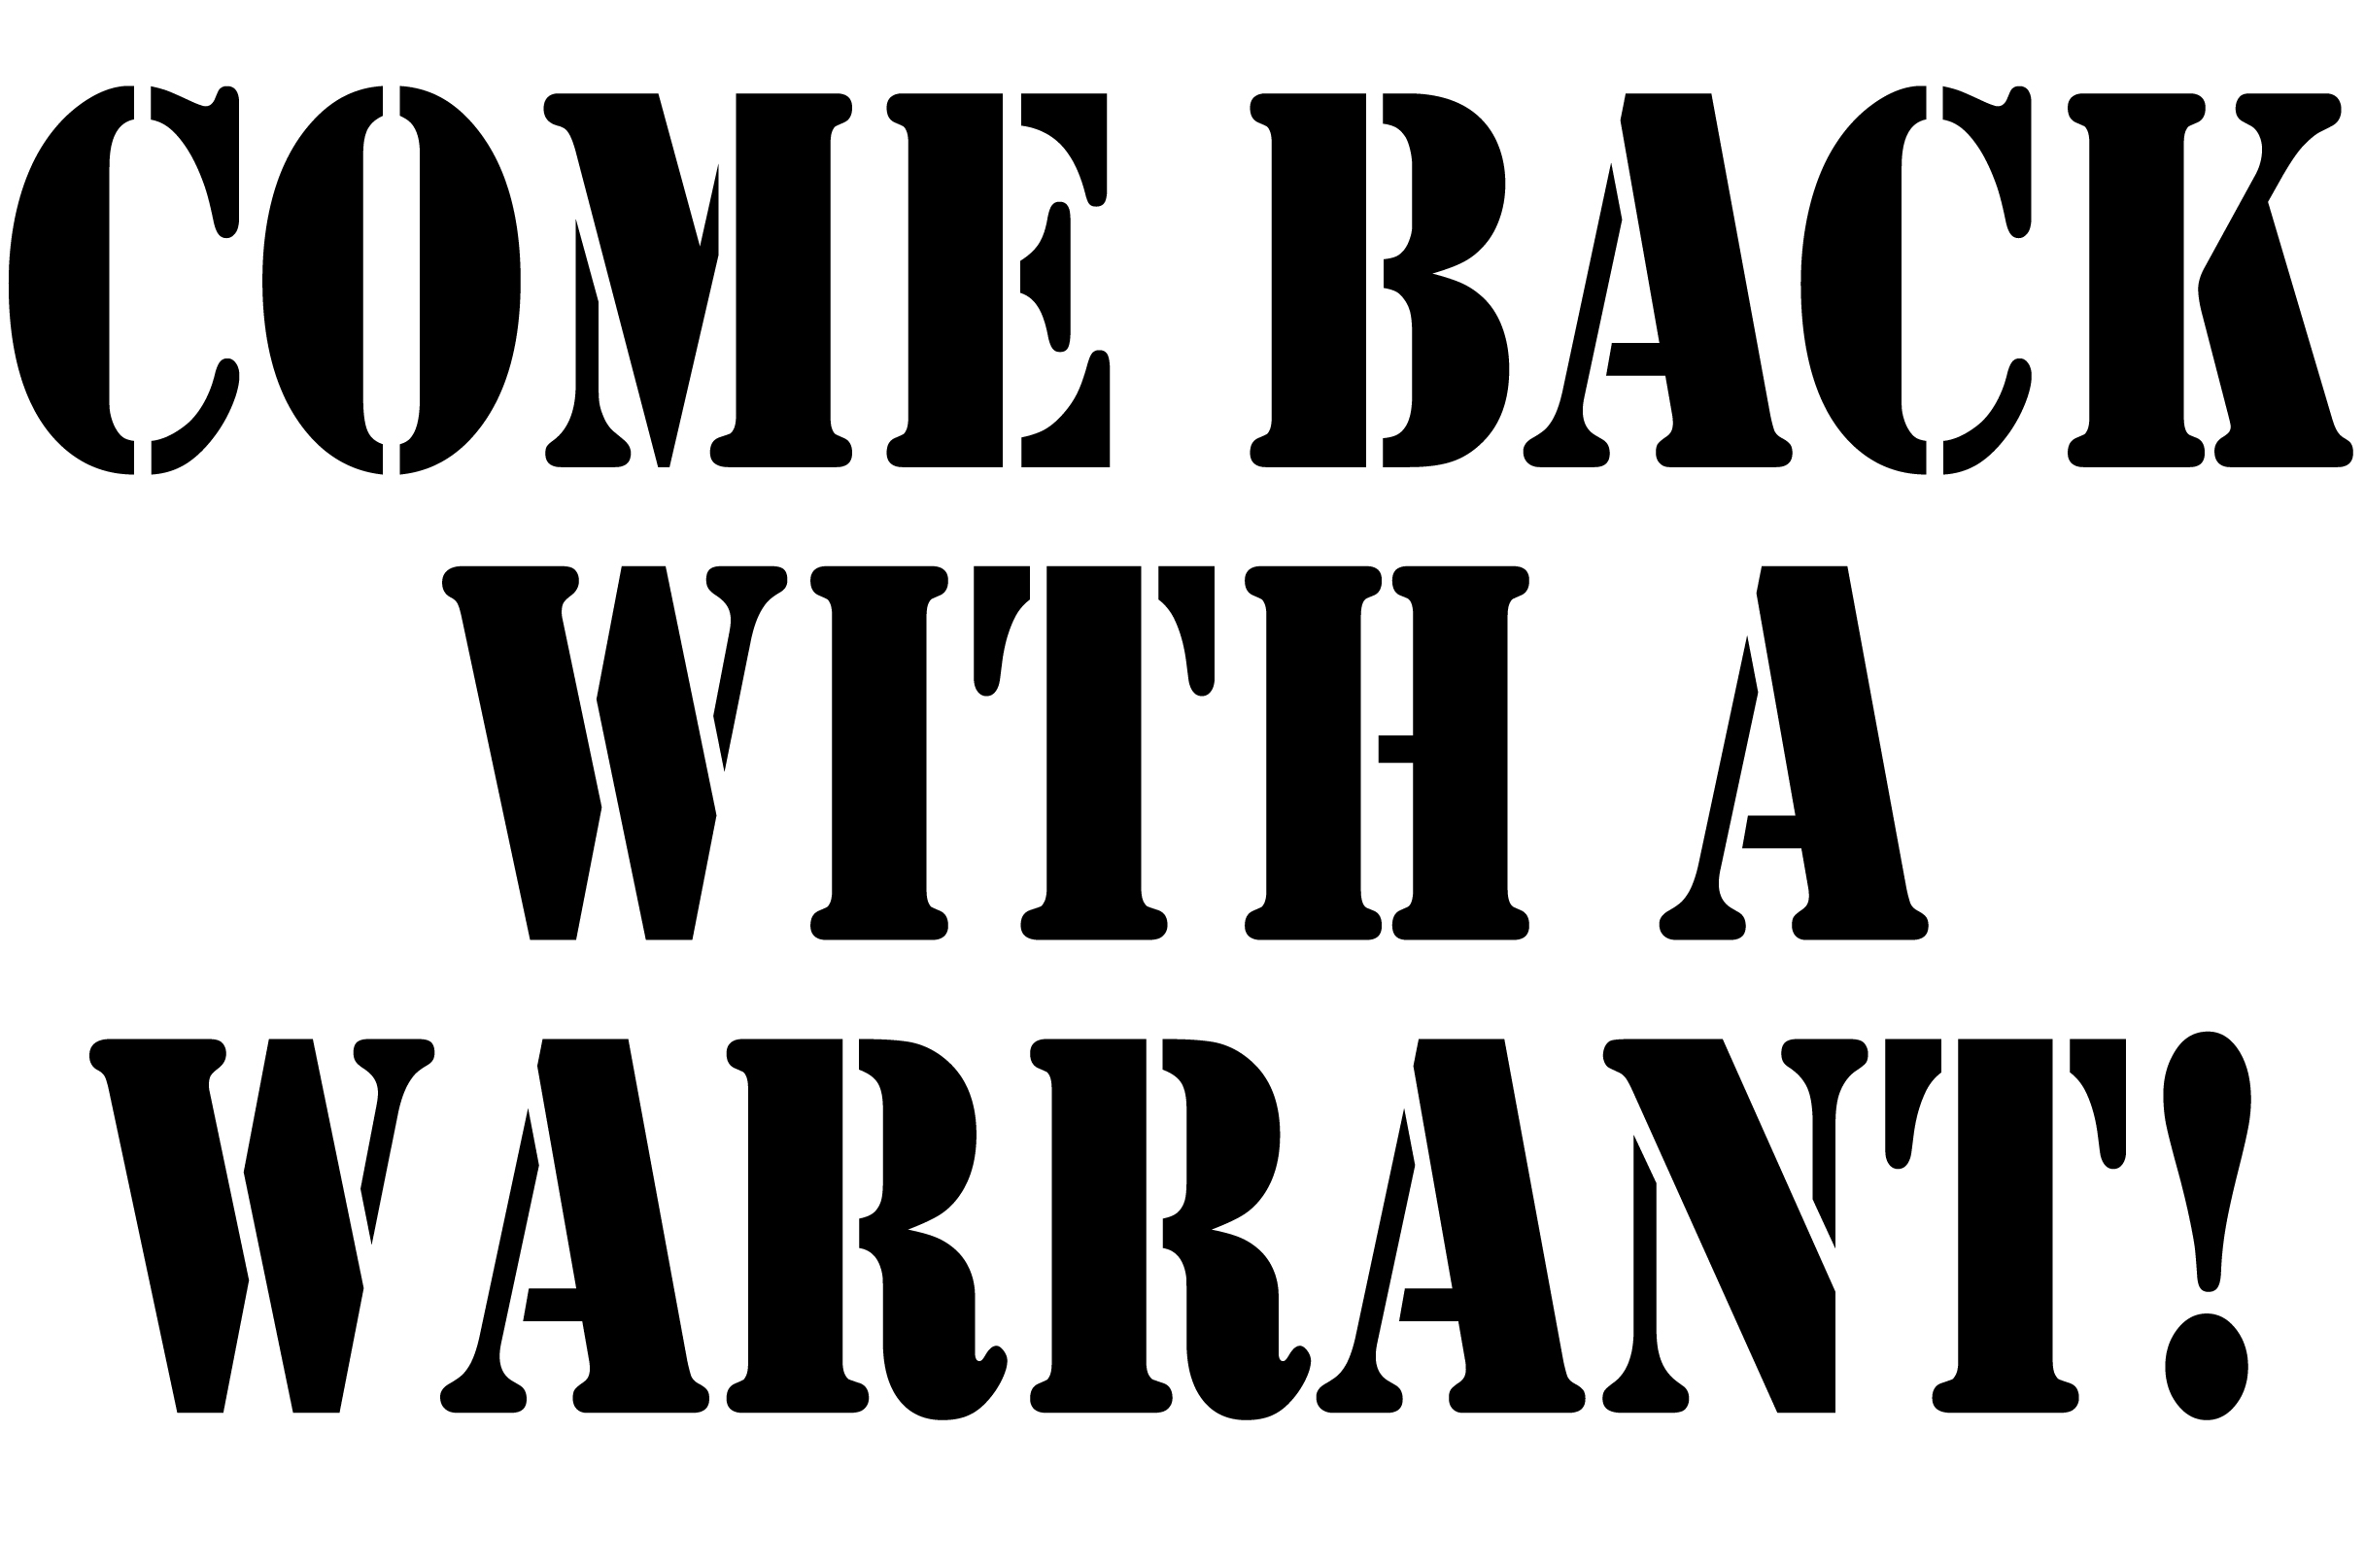 Free Search Warrant Cliparts, Download Free Clip Art, Free